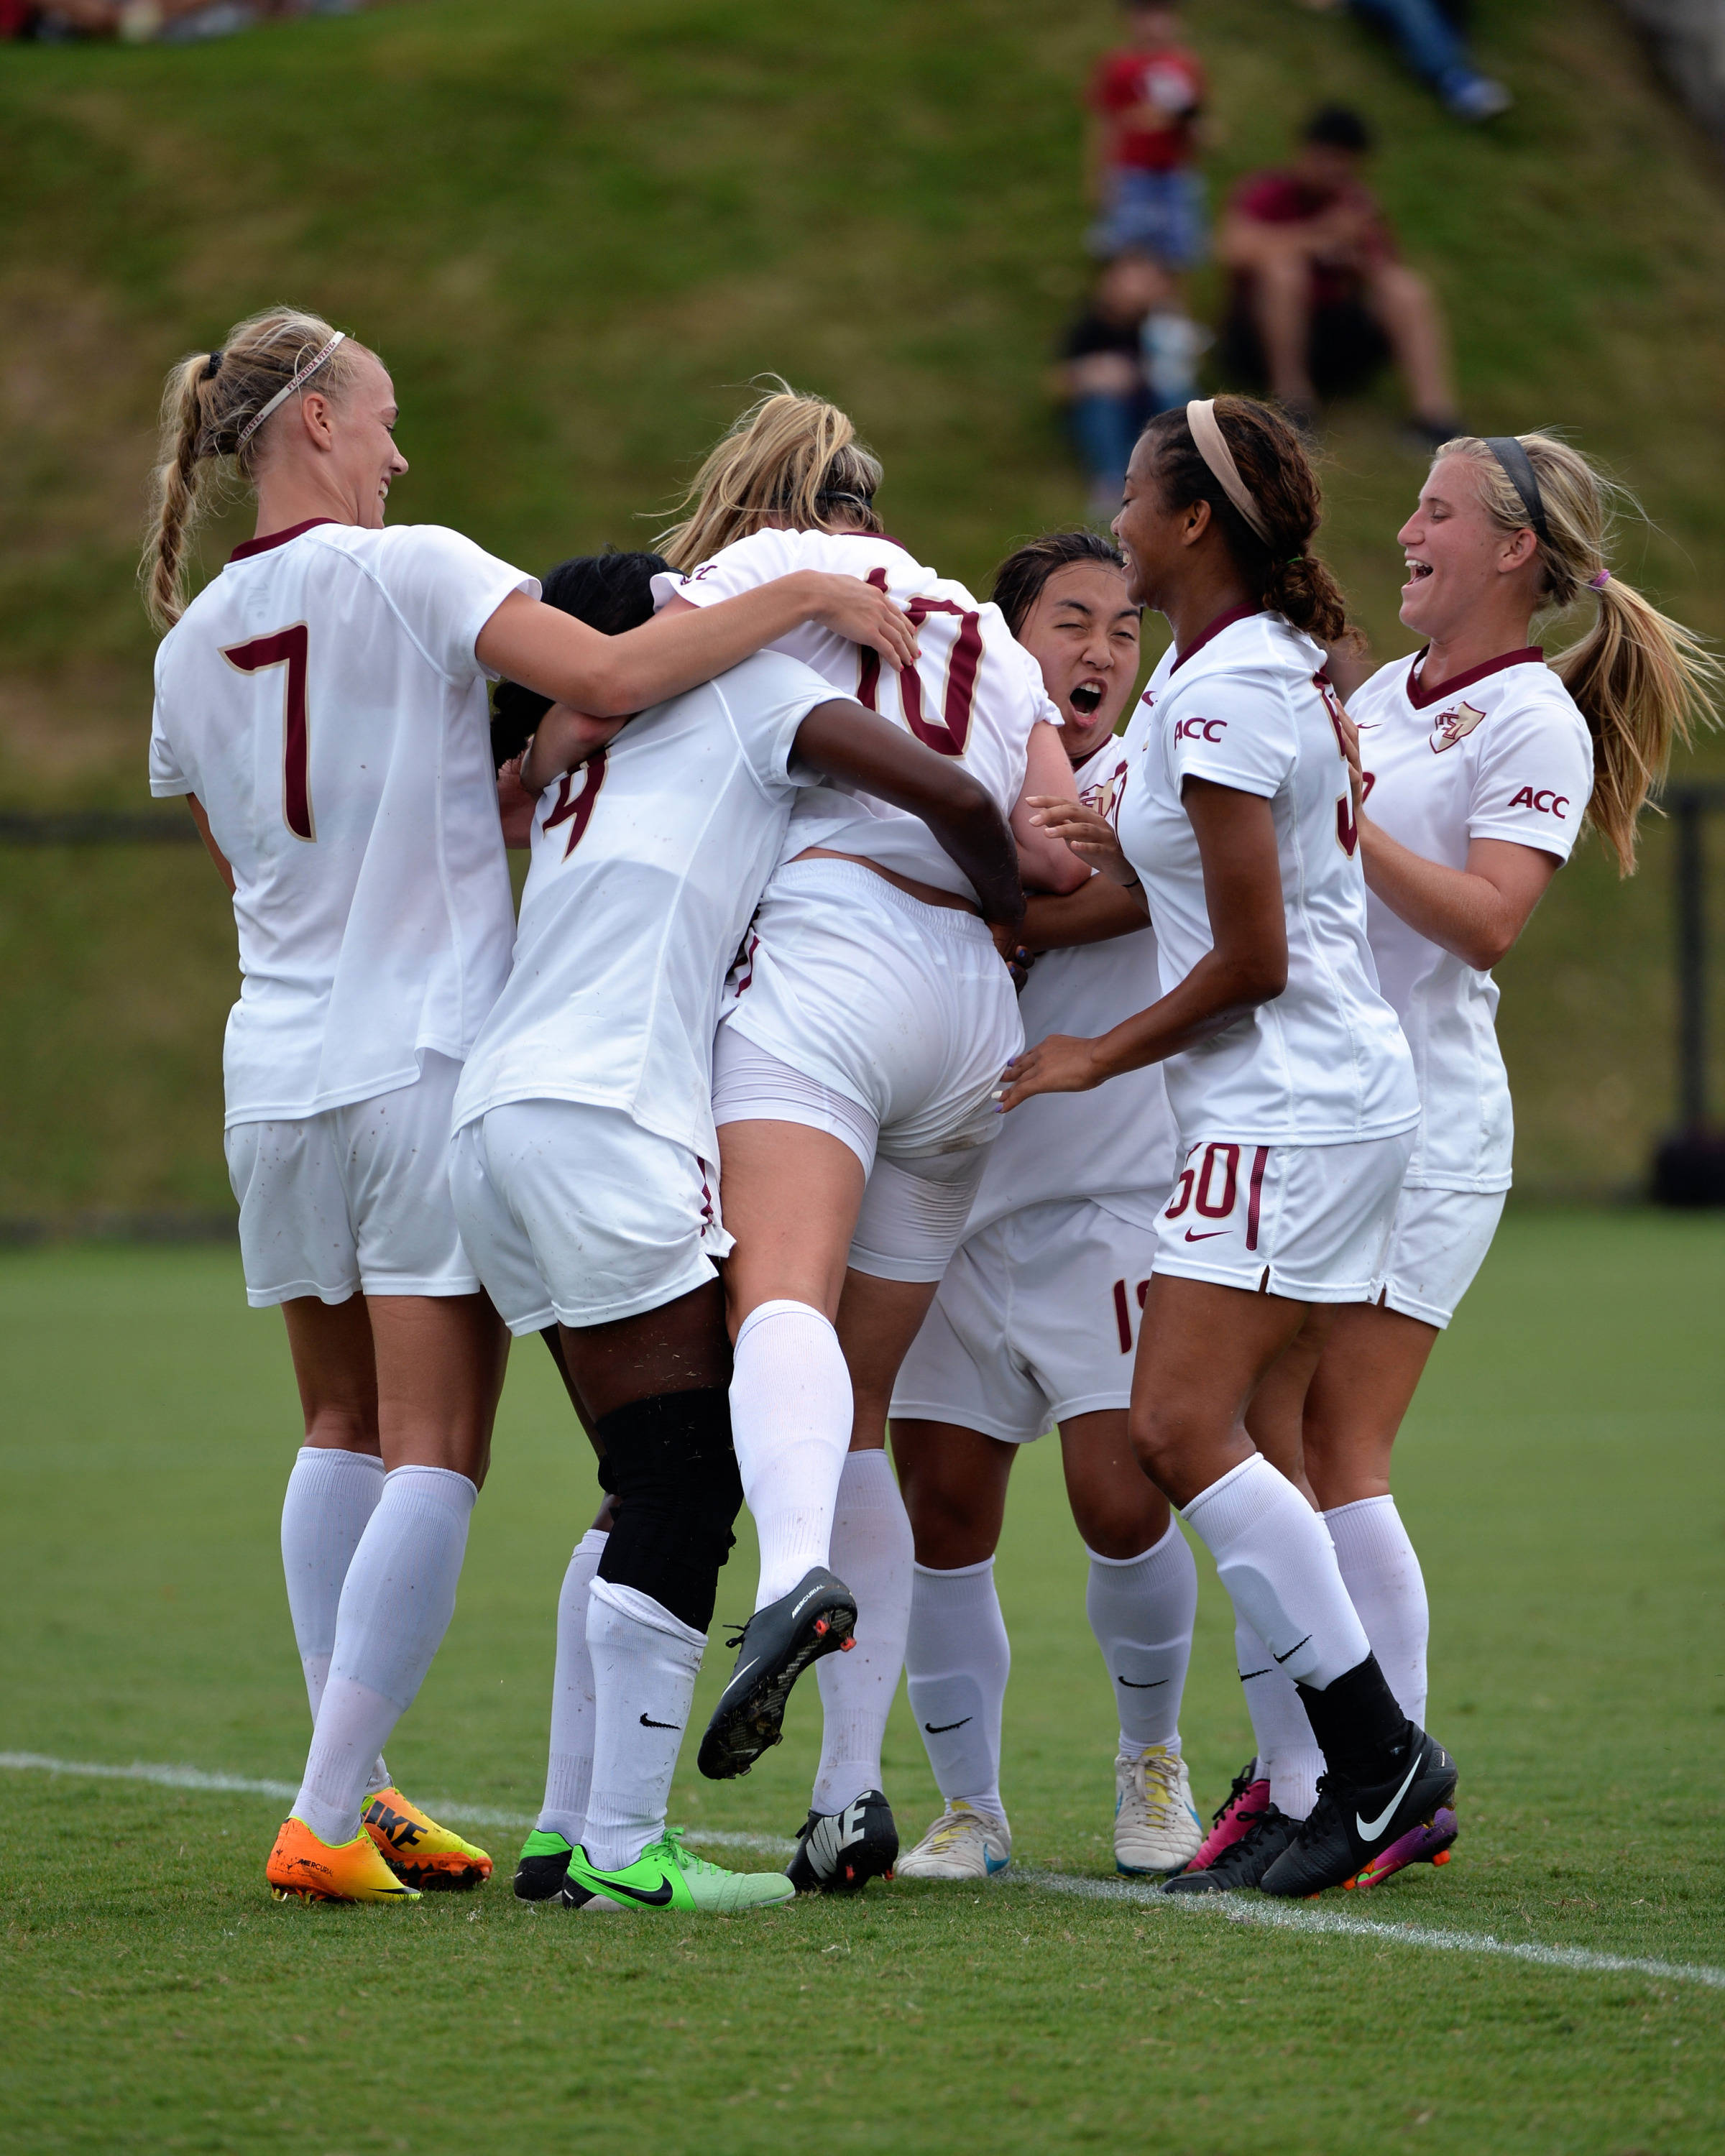 The Seminoles celebrate after scoring a goal against Auburn.